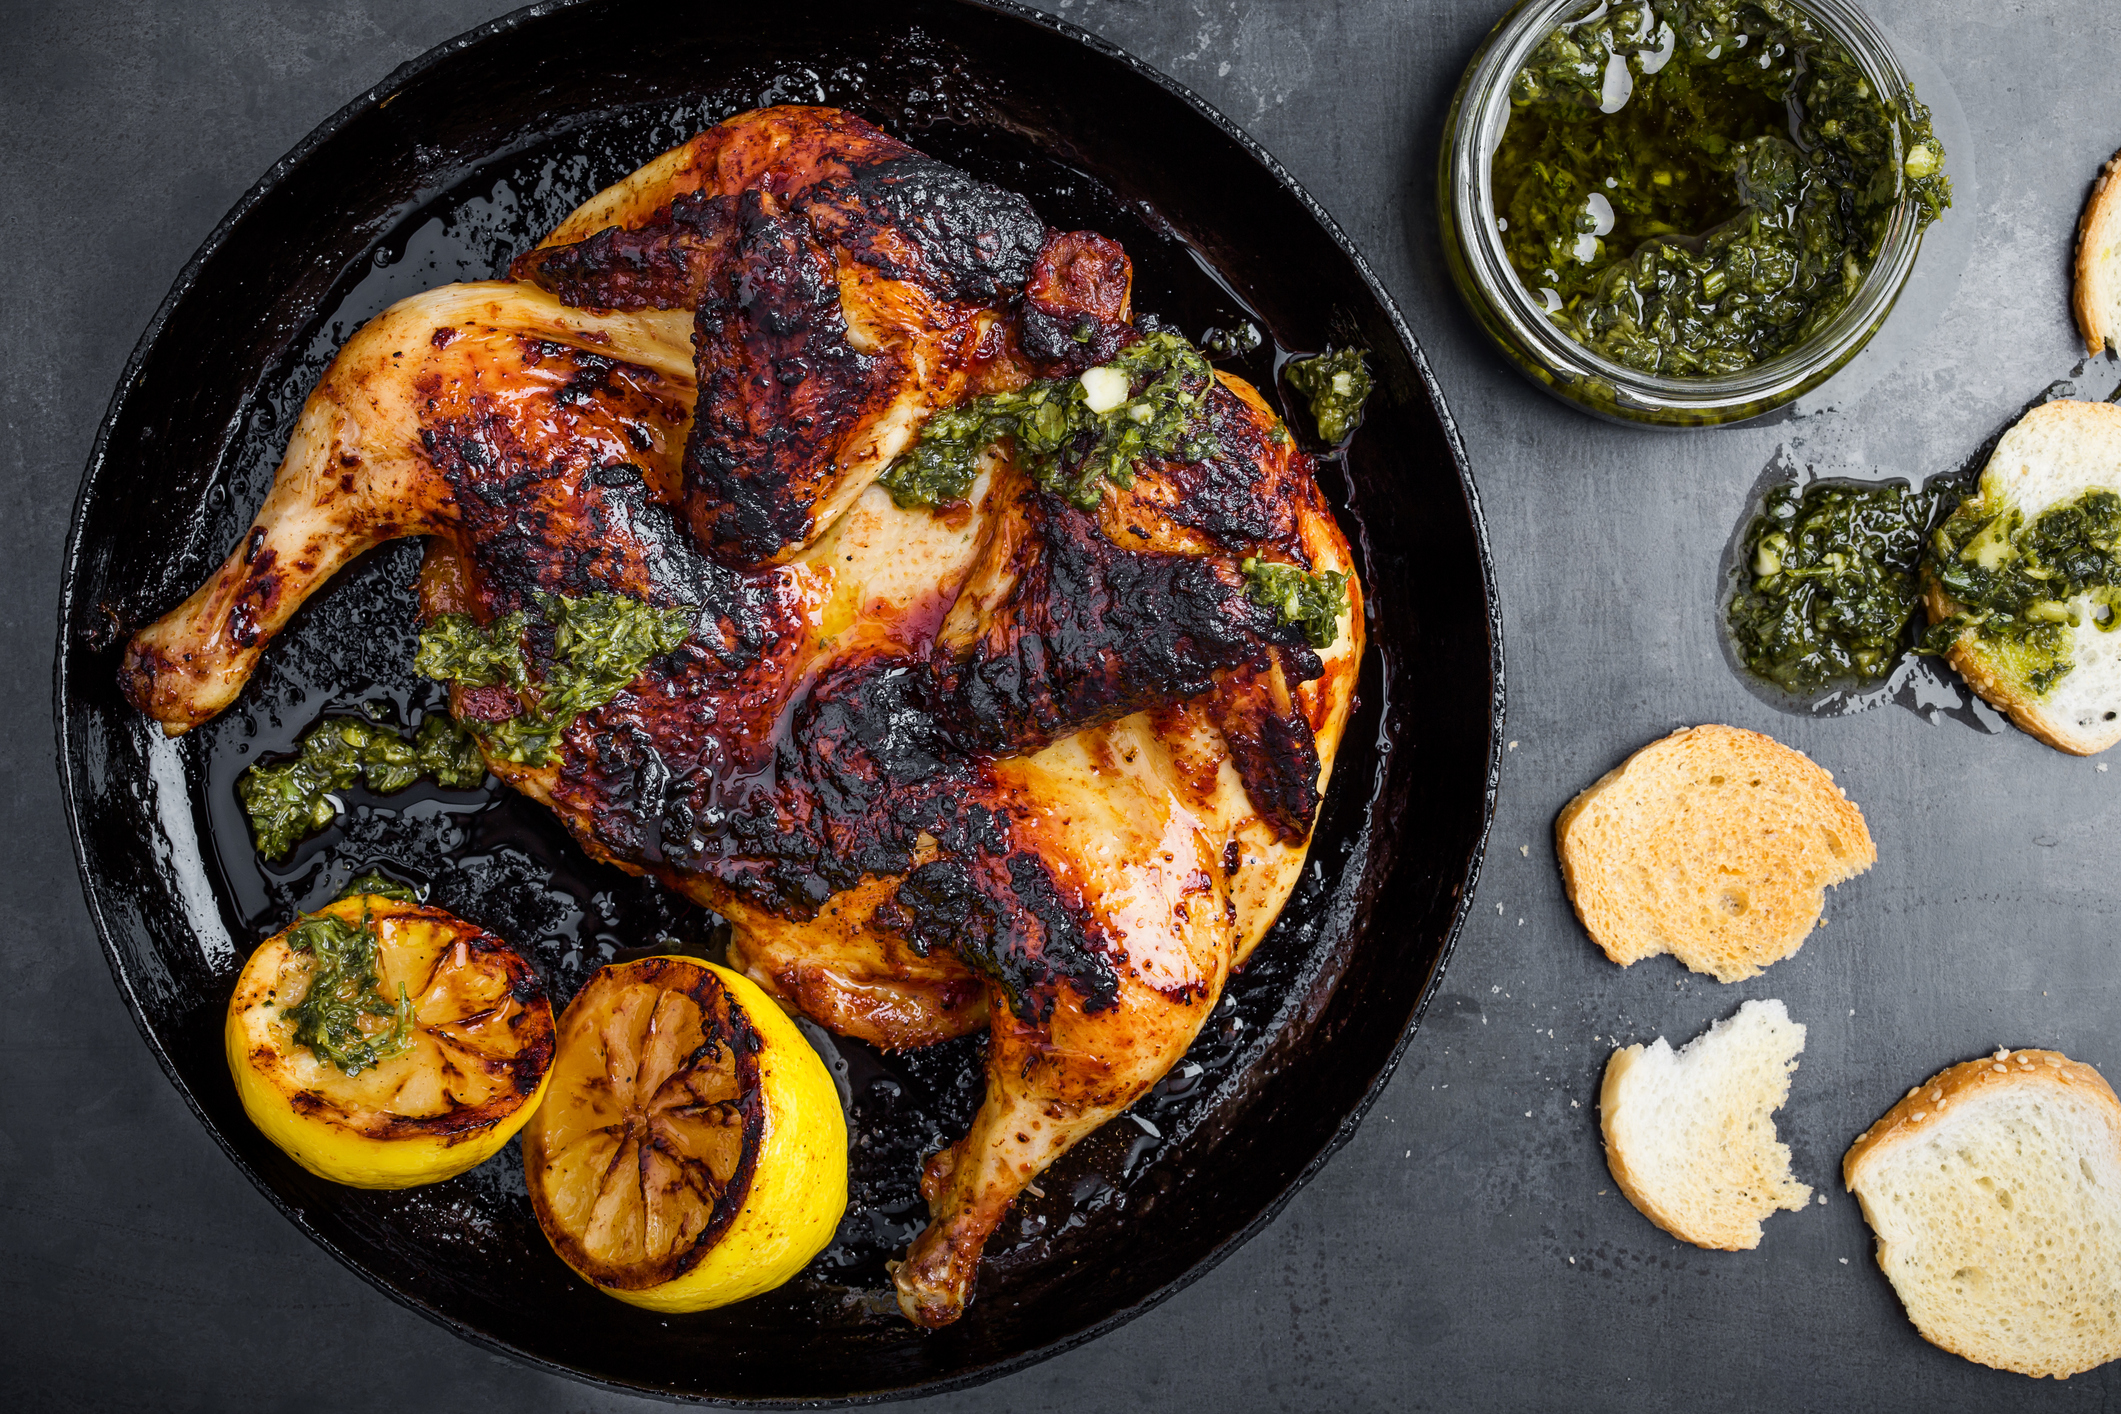 How to BBQ chicken: Top tips